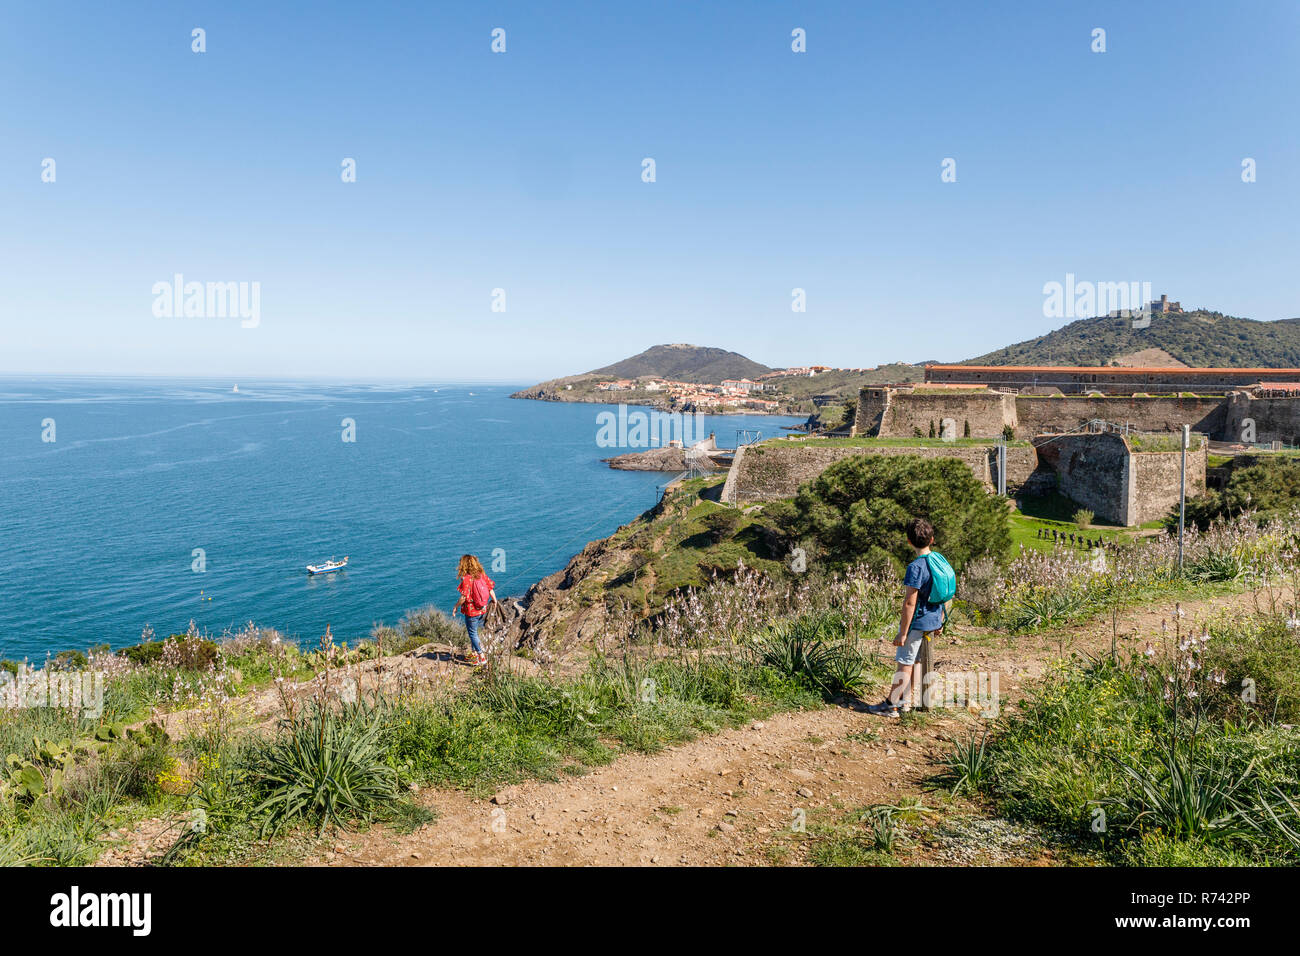 France, Pyrenees Orientales, Cote Vermeille, Collioure, littoral path, the Fort Miradou army property and Port Vendres in the background // France, Py - Stock Image